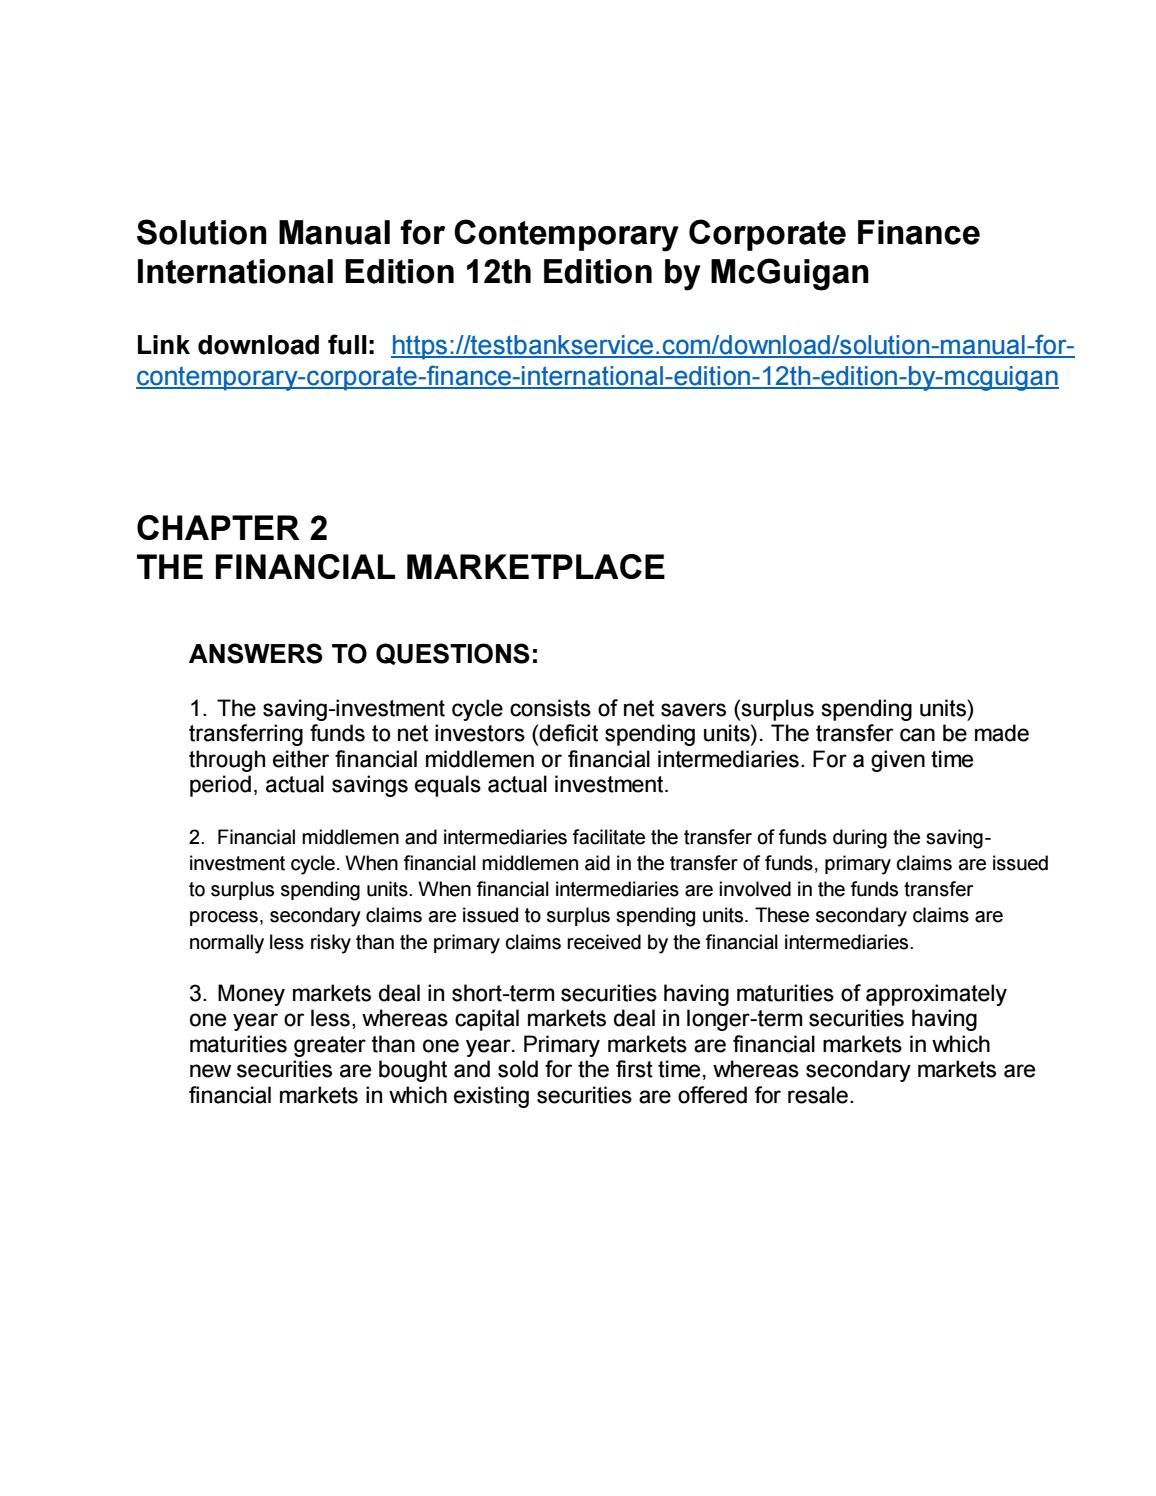 solution manual for contemporary corporate finance international rh pinterest com Engineering Solutions Manual Principles of Manufacturing Processes Metal Solutions Manual